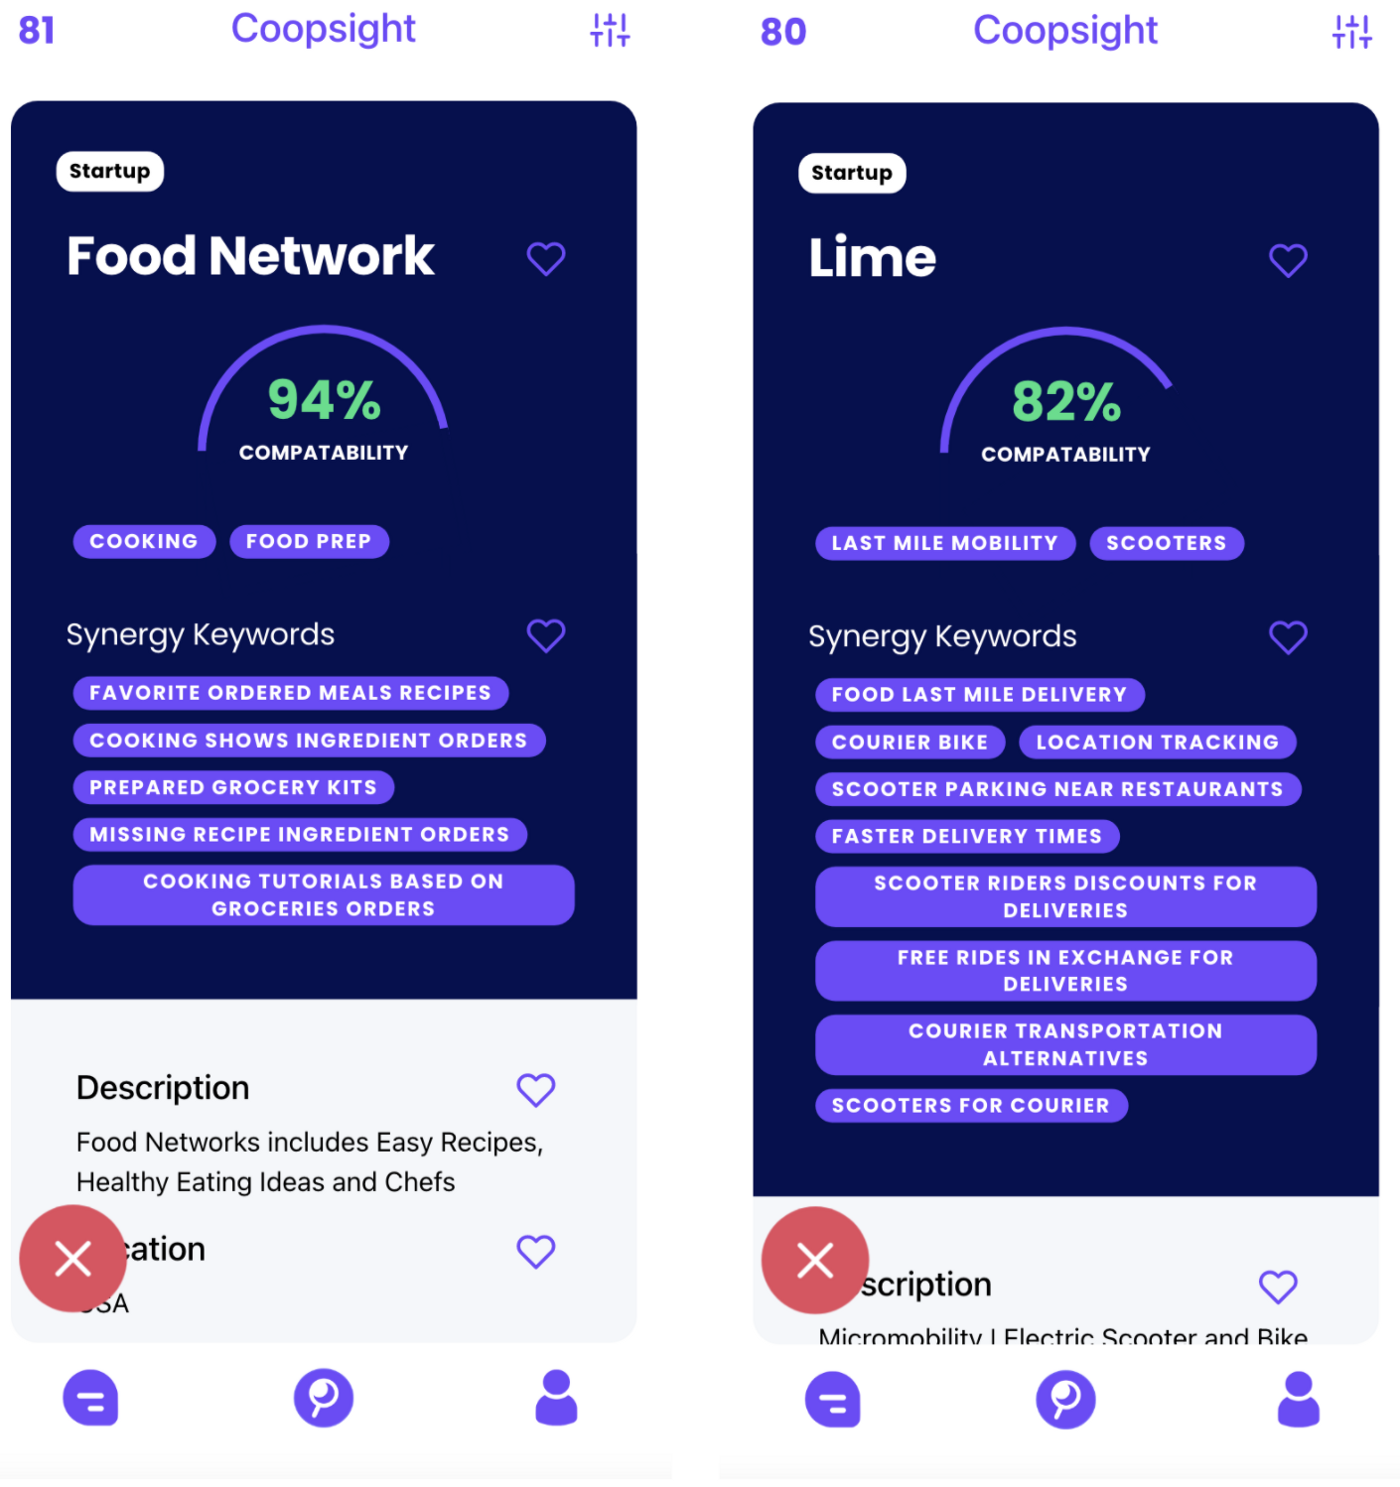 DoorDash's Match insights between Food Network and Lime bikes